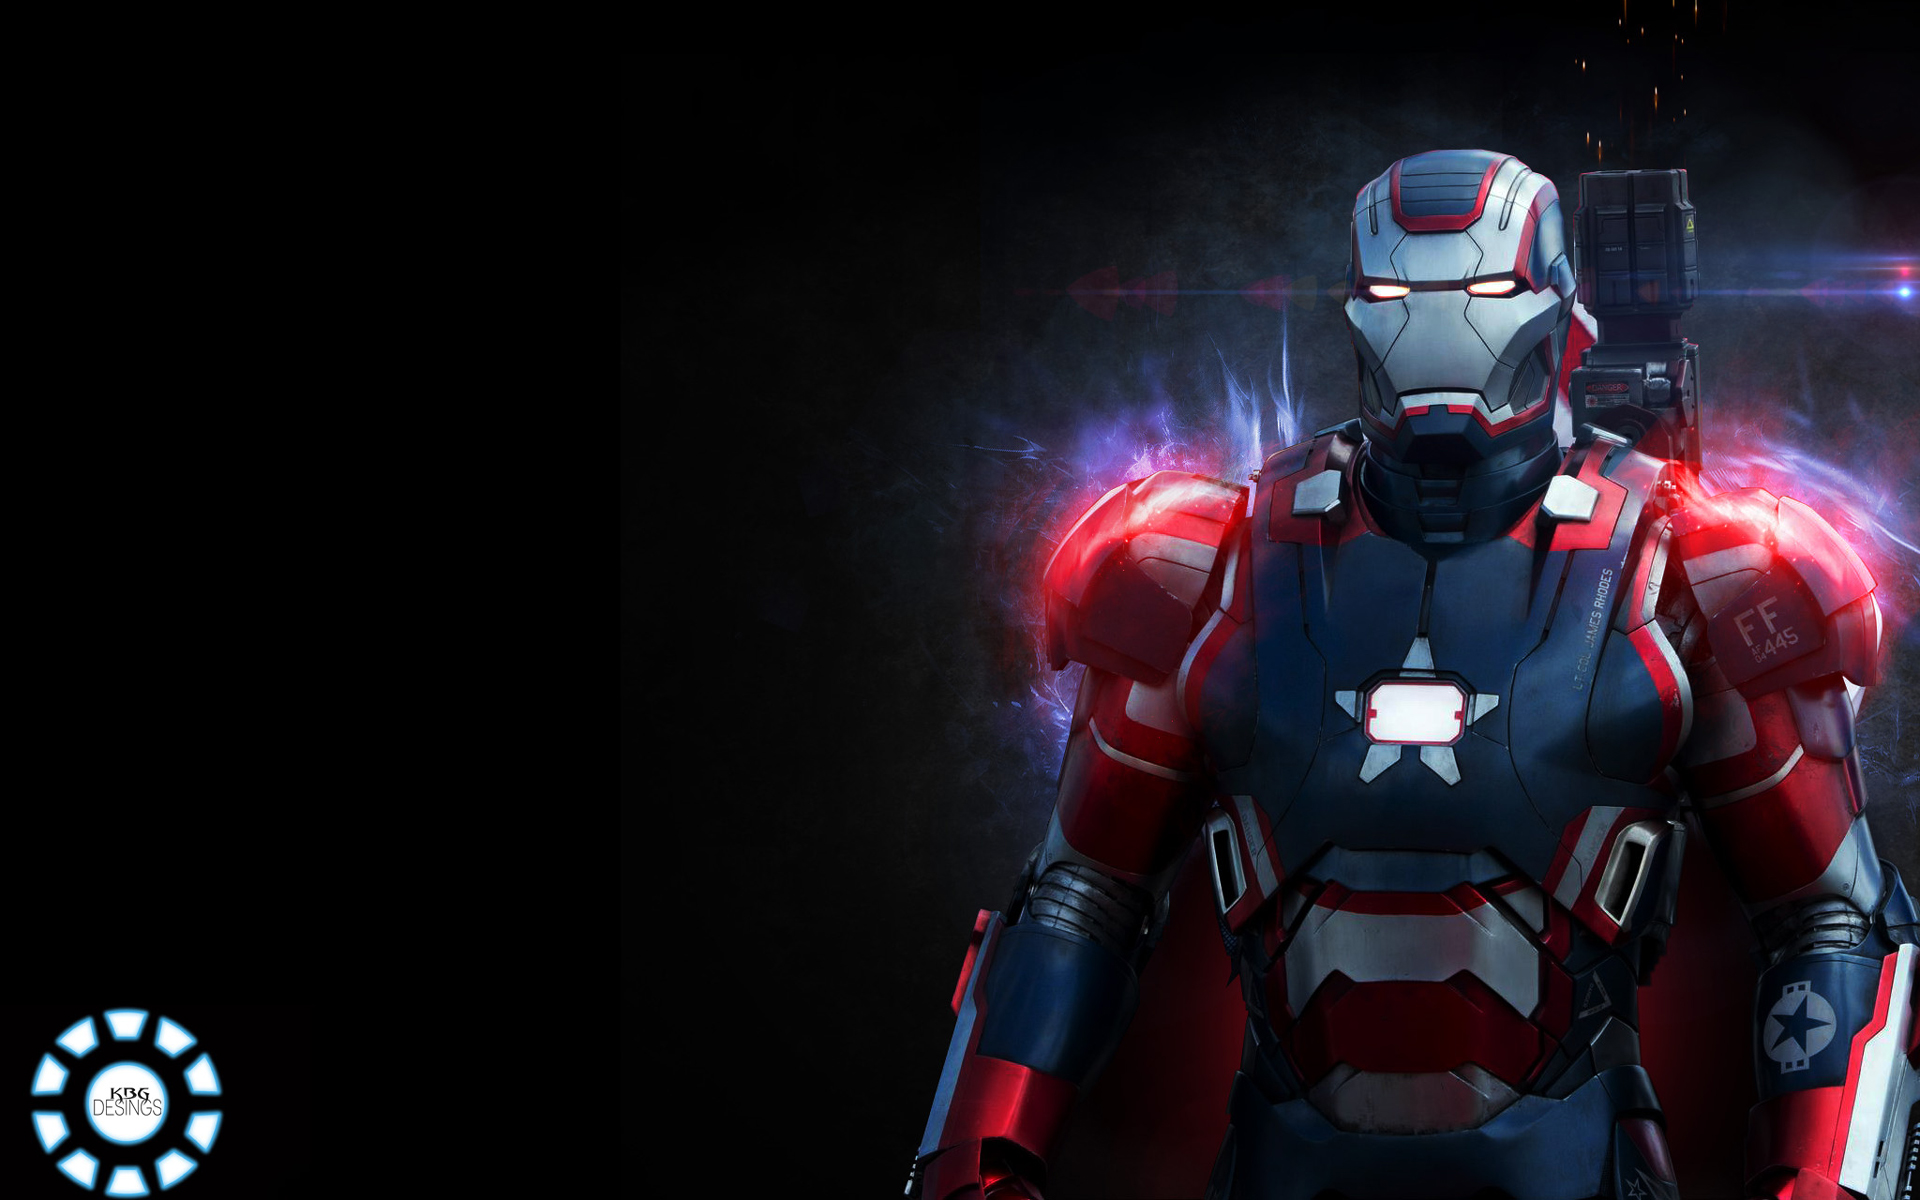 Iron man wallpaper full hd 1920x1200